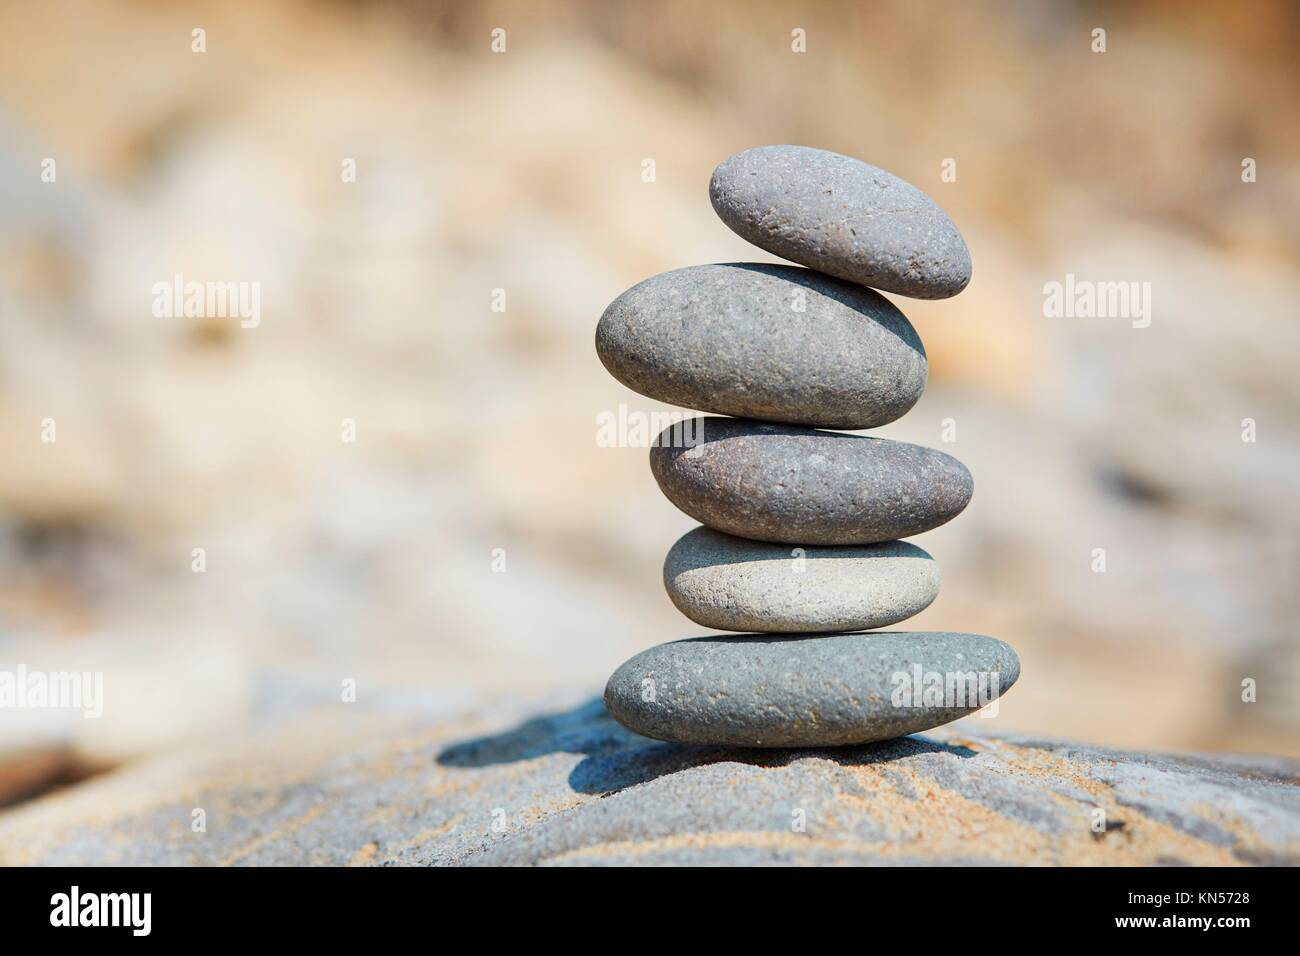 Stone composition on the beach. - Stock Image